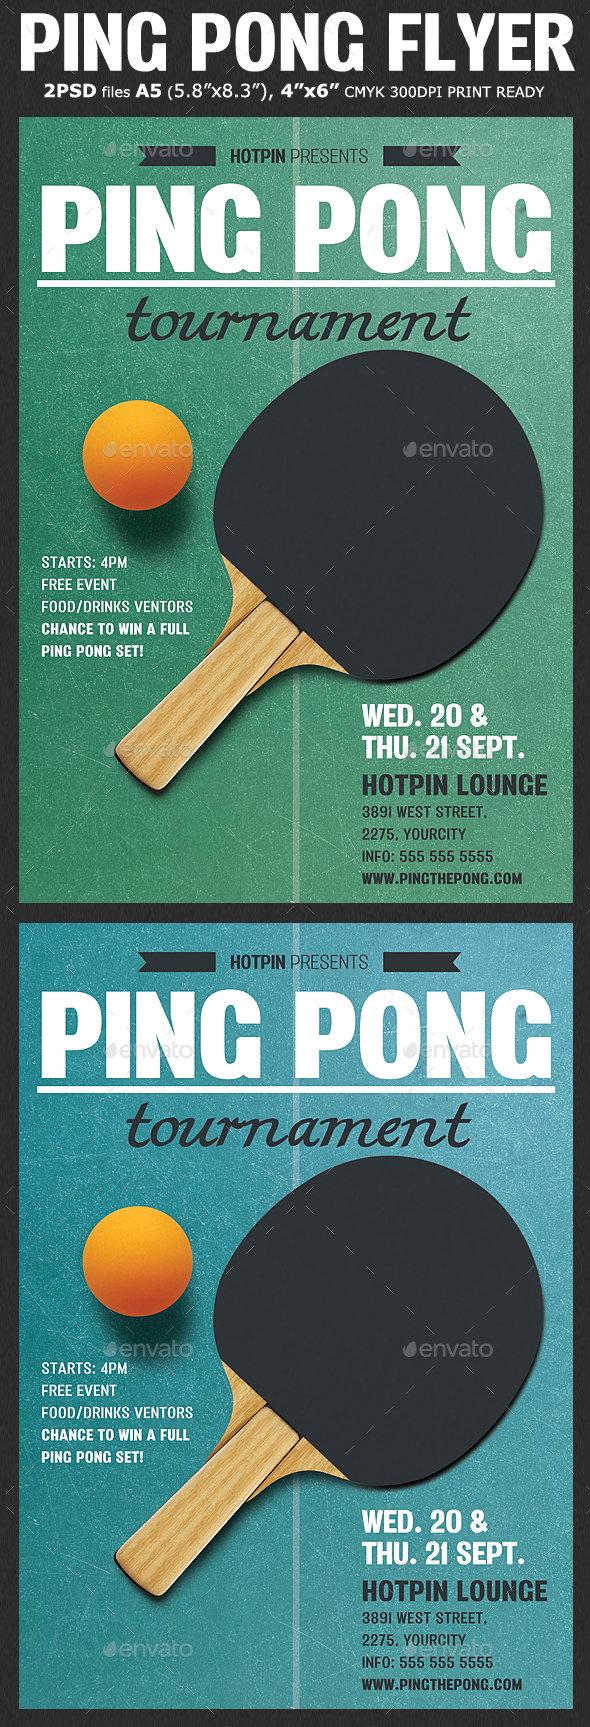 20 beautiful table tennis tournament invitation free.html